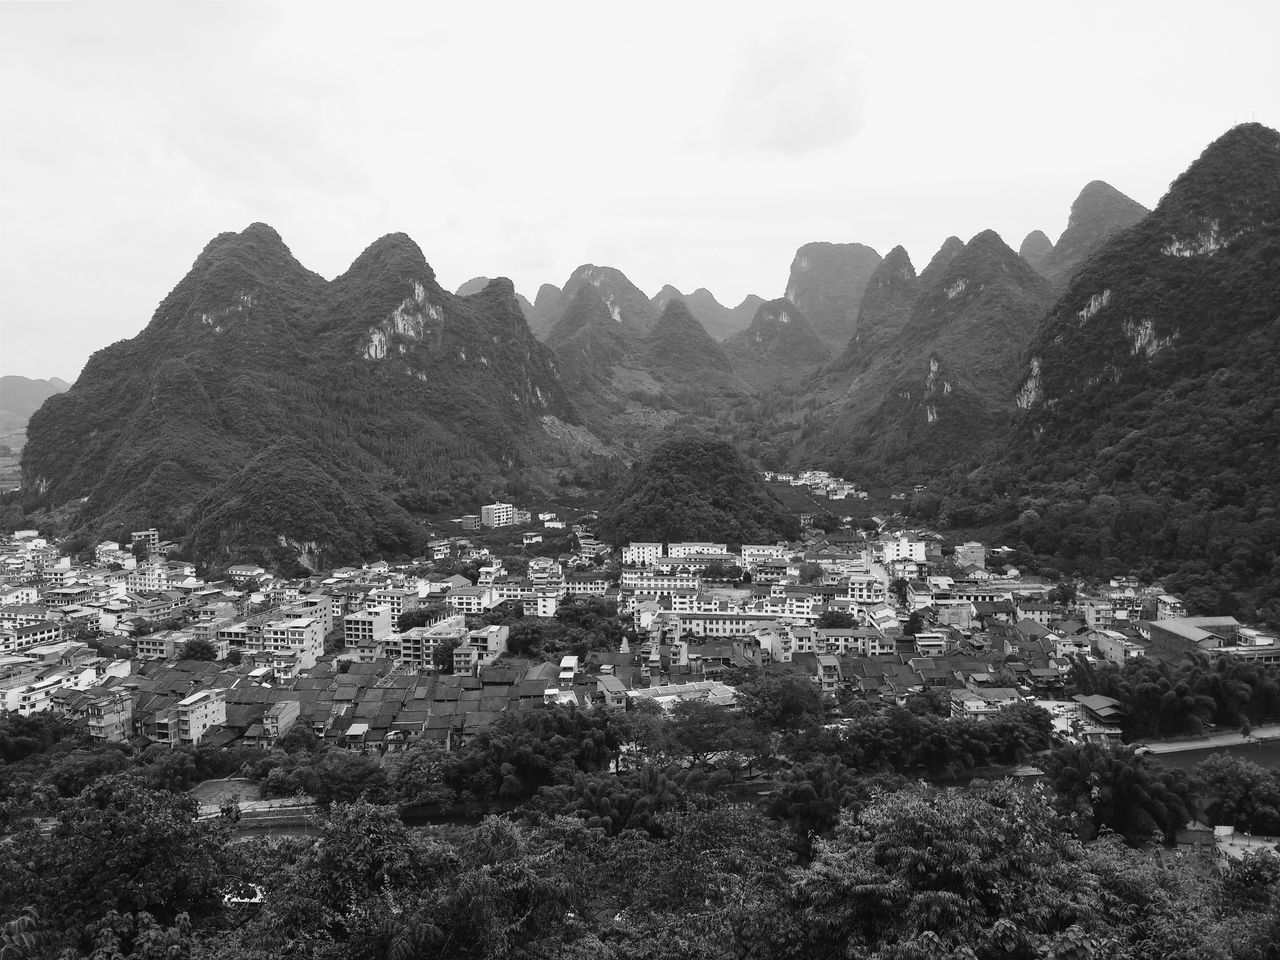 High Angle View Of Town By Mountain Range Against Sky